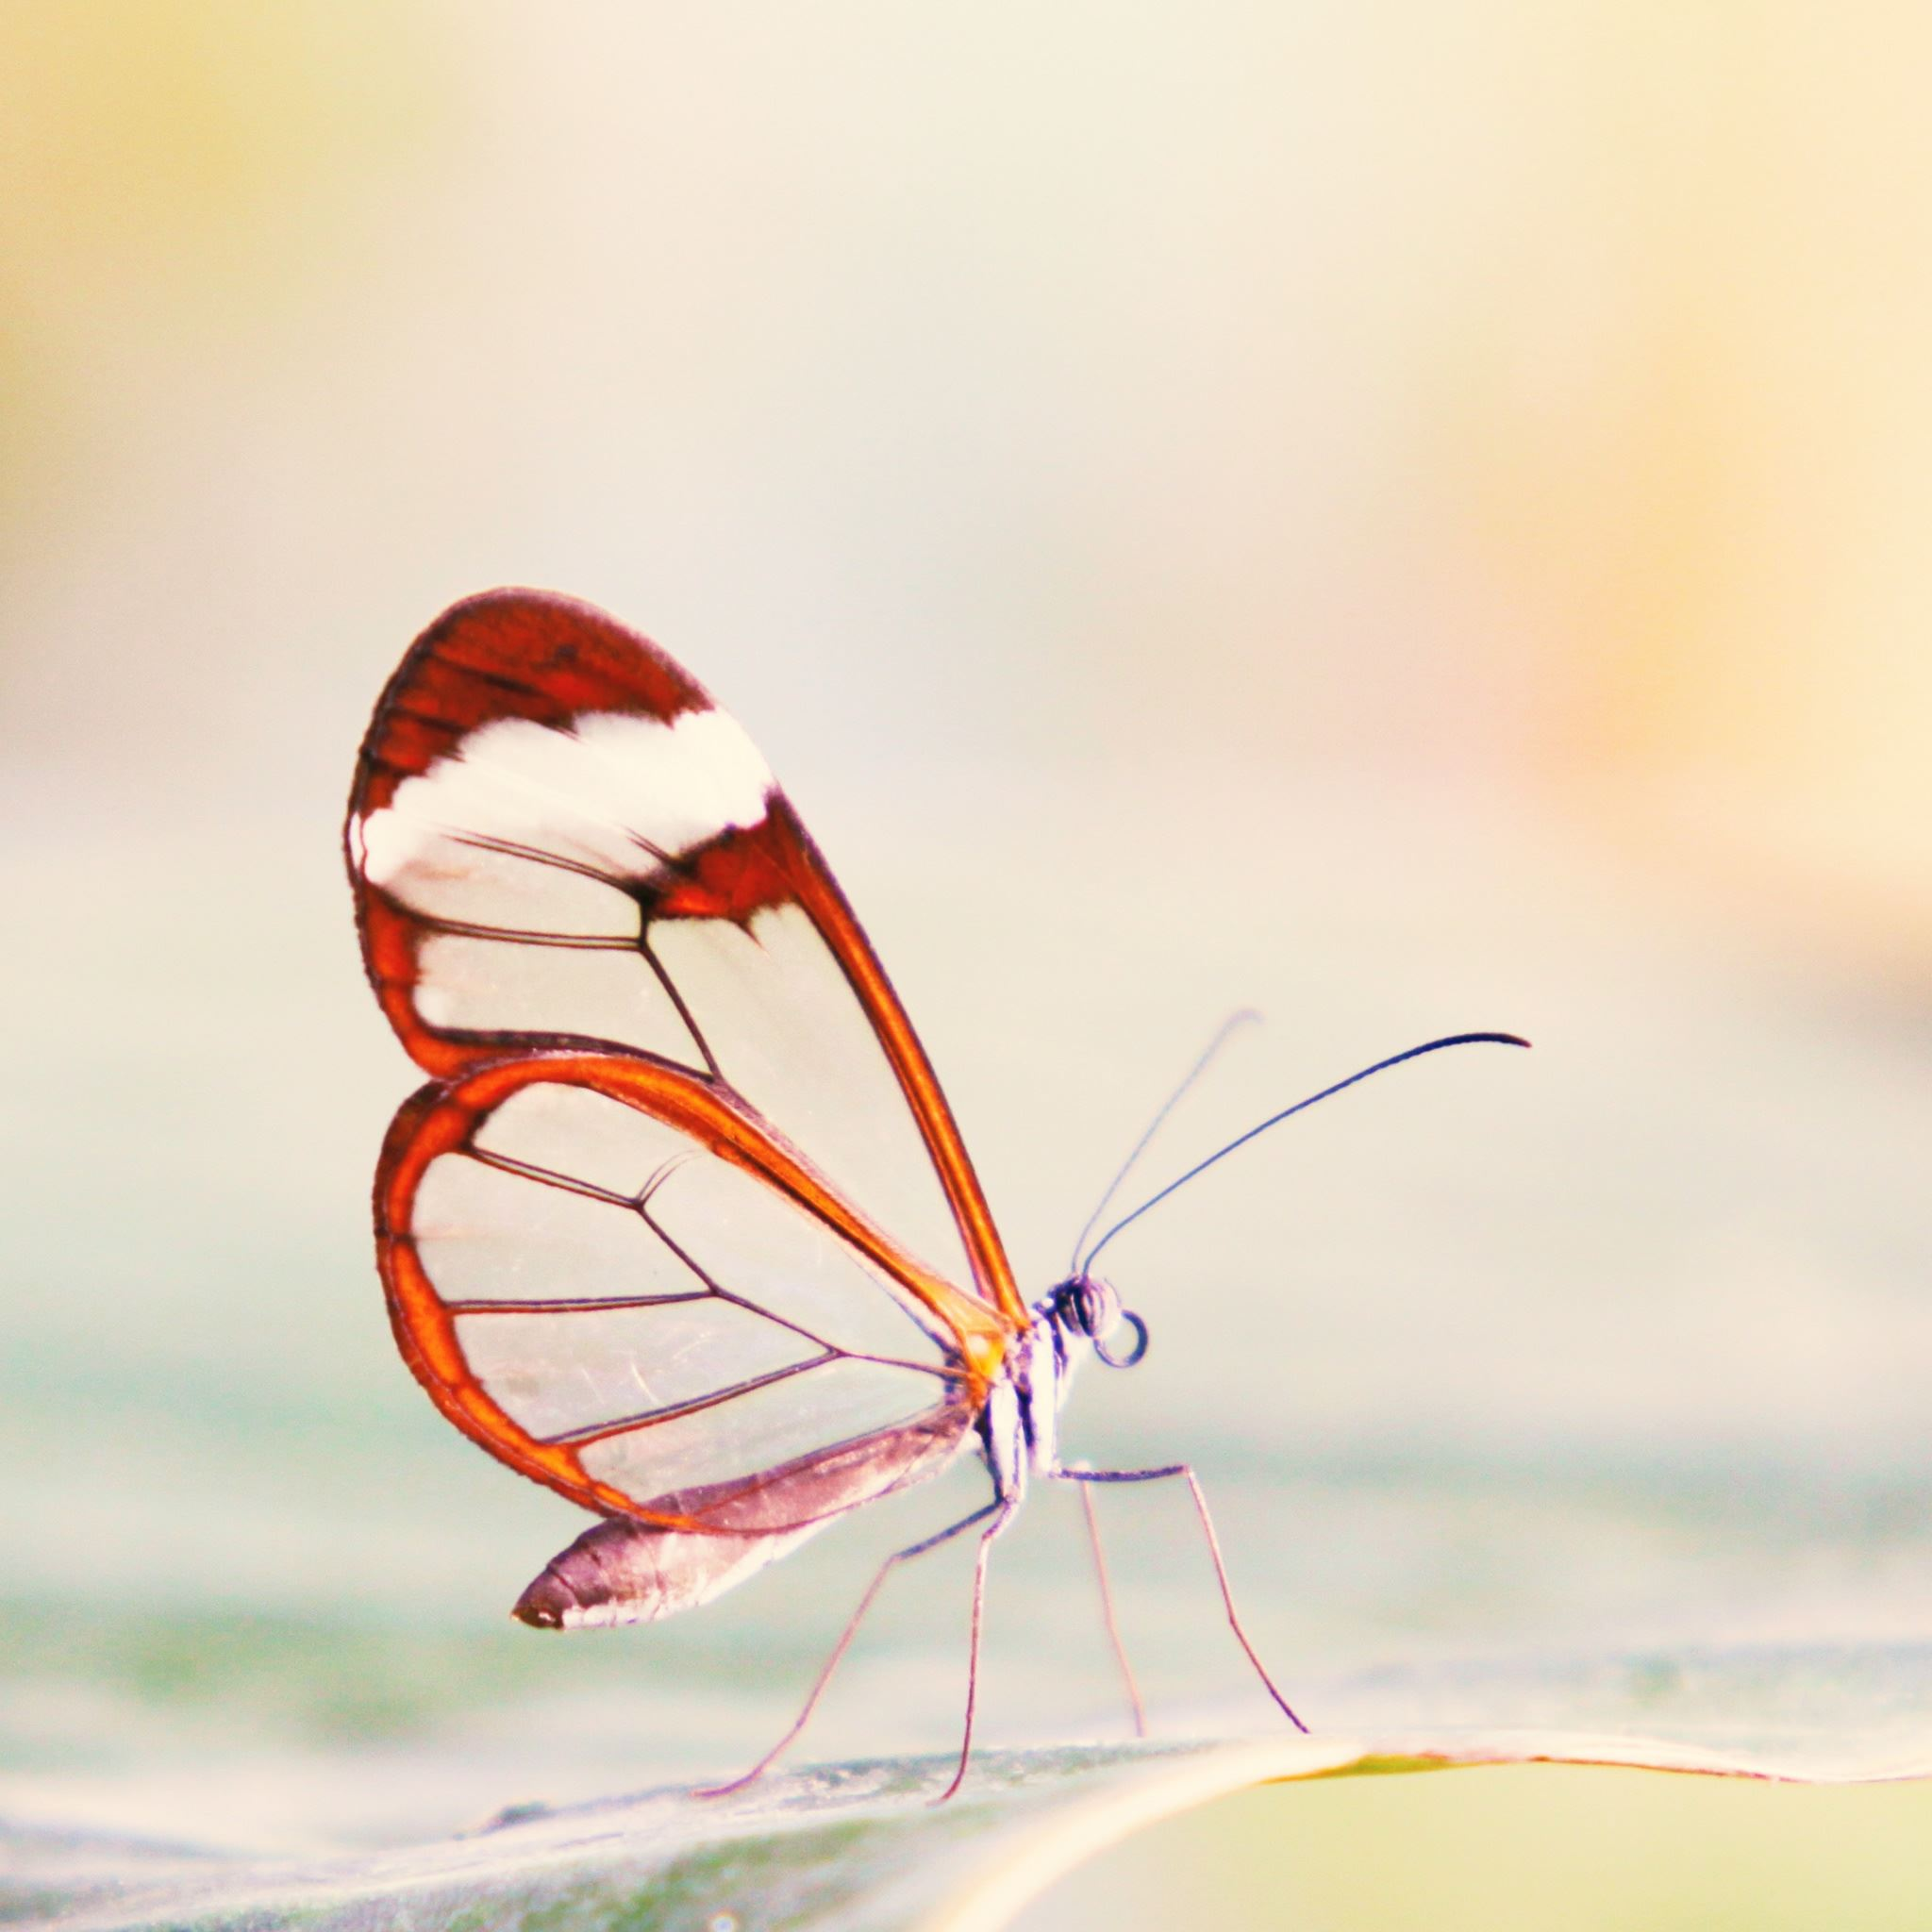 Transparent Wings Butterfly iPad Air wallpaper